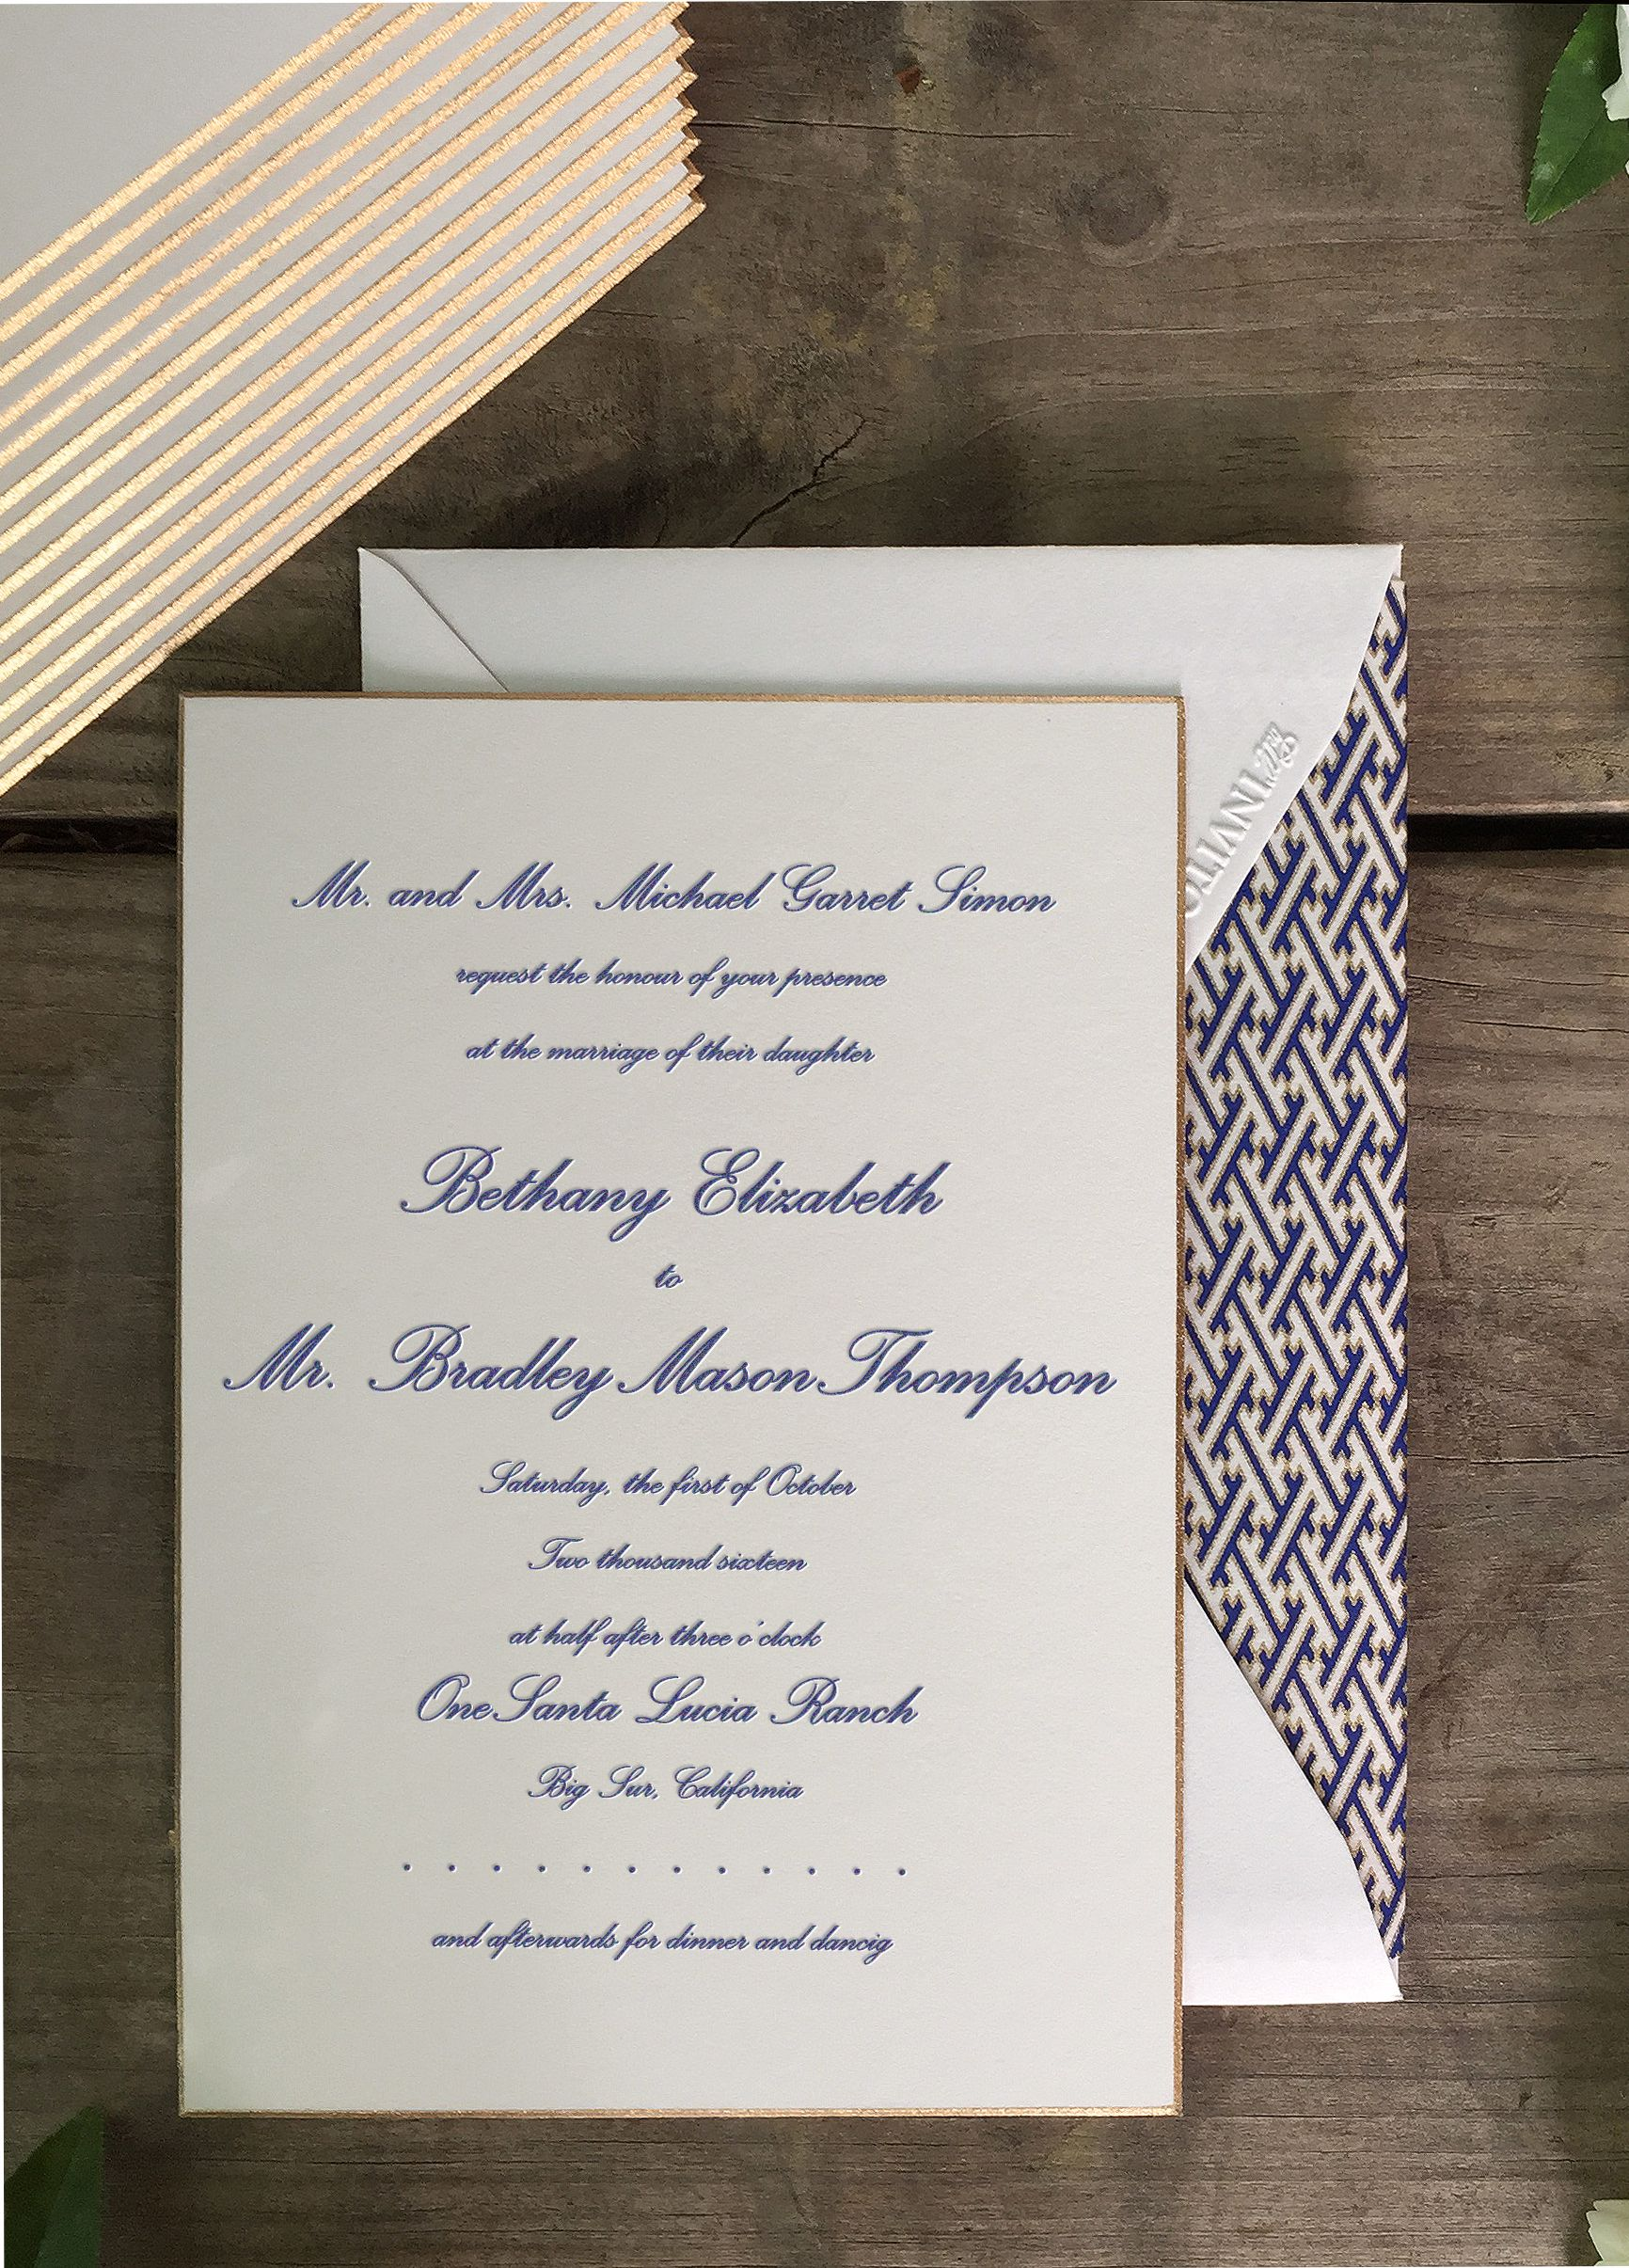 Design your own navy and gold wedding invitation online using Bell ...